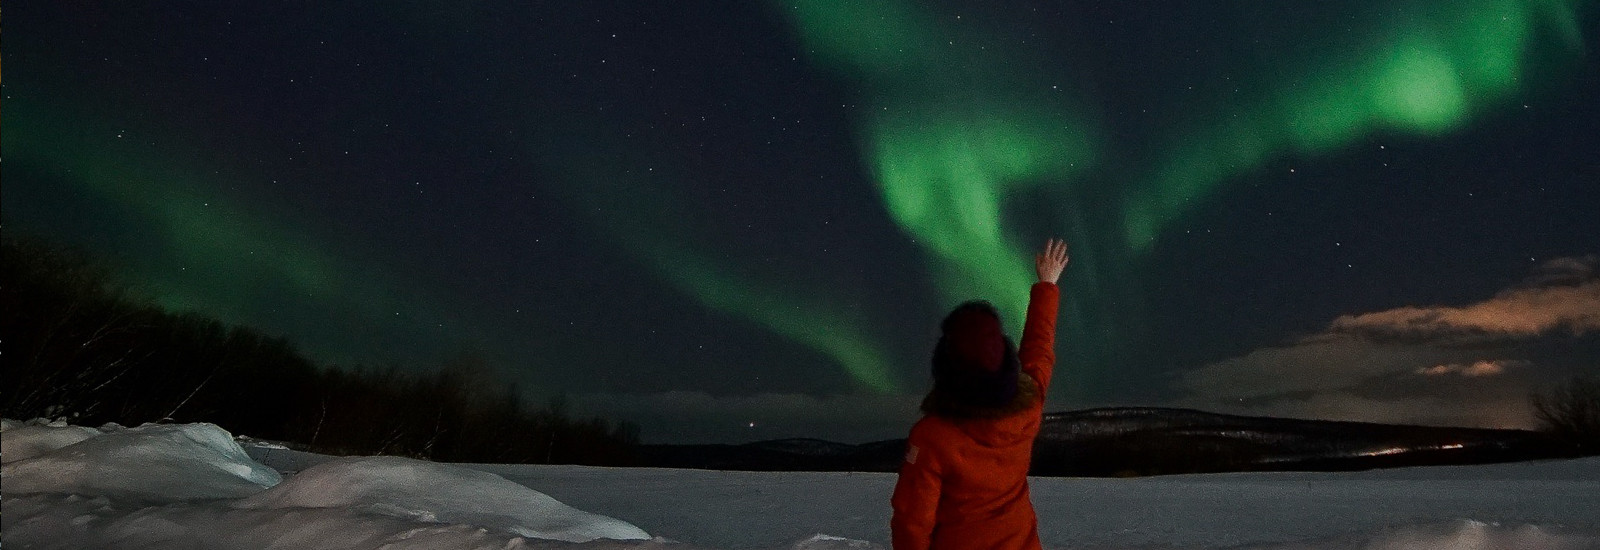 In search of Northern lights